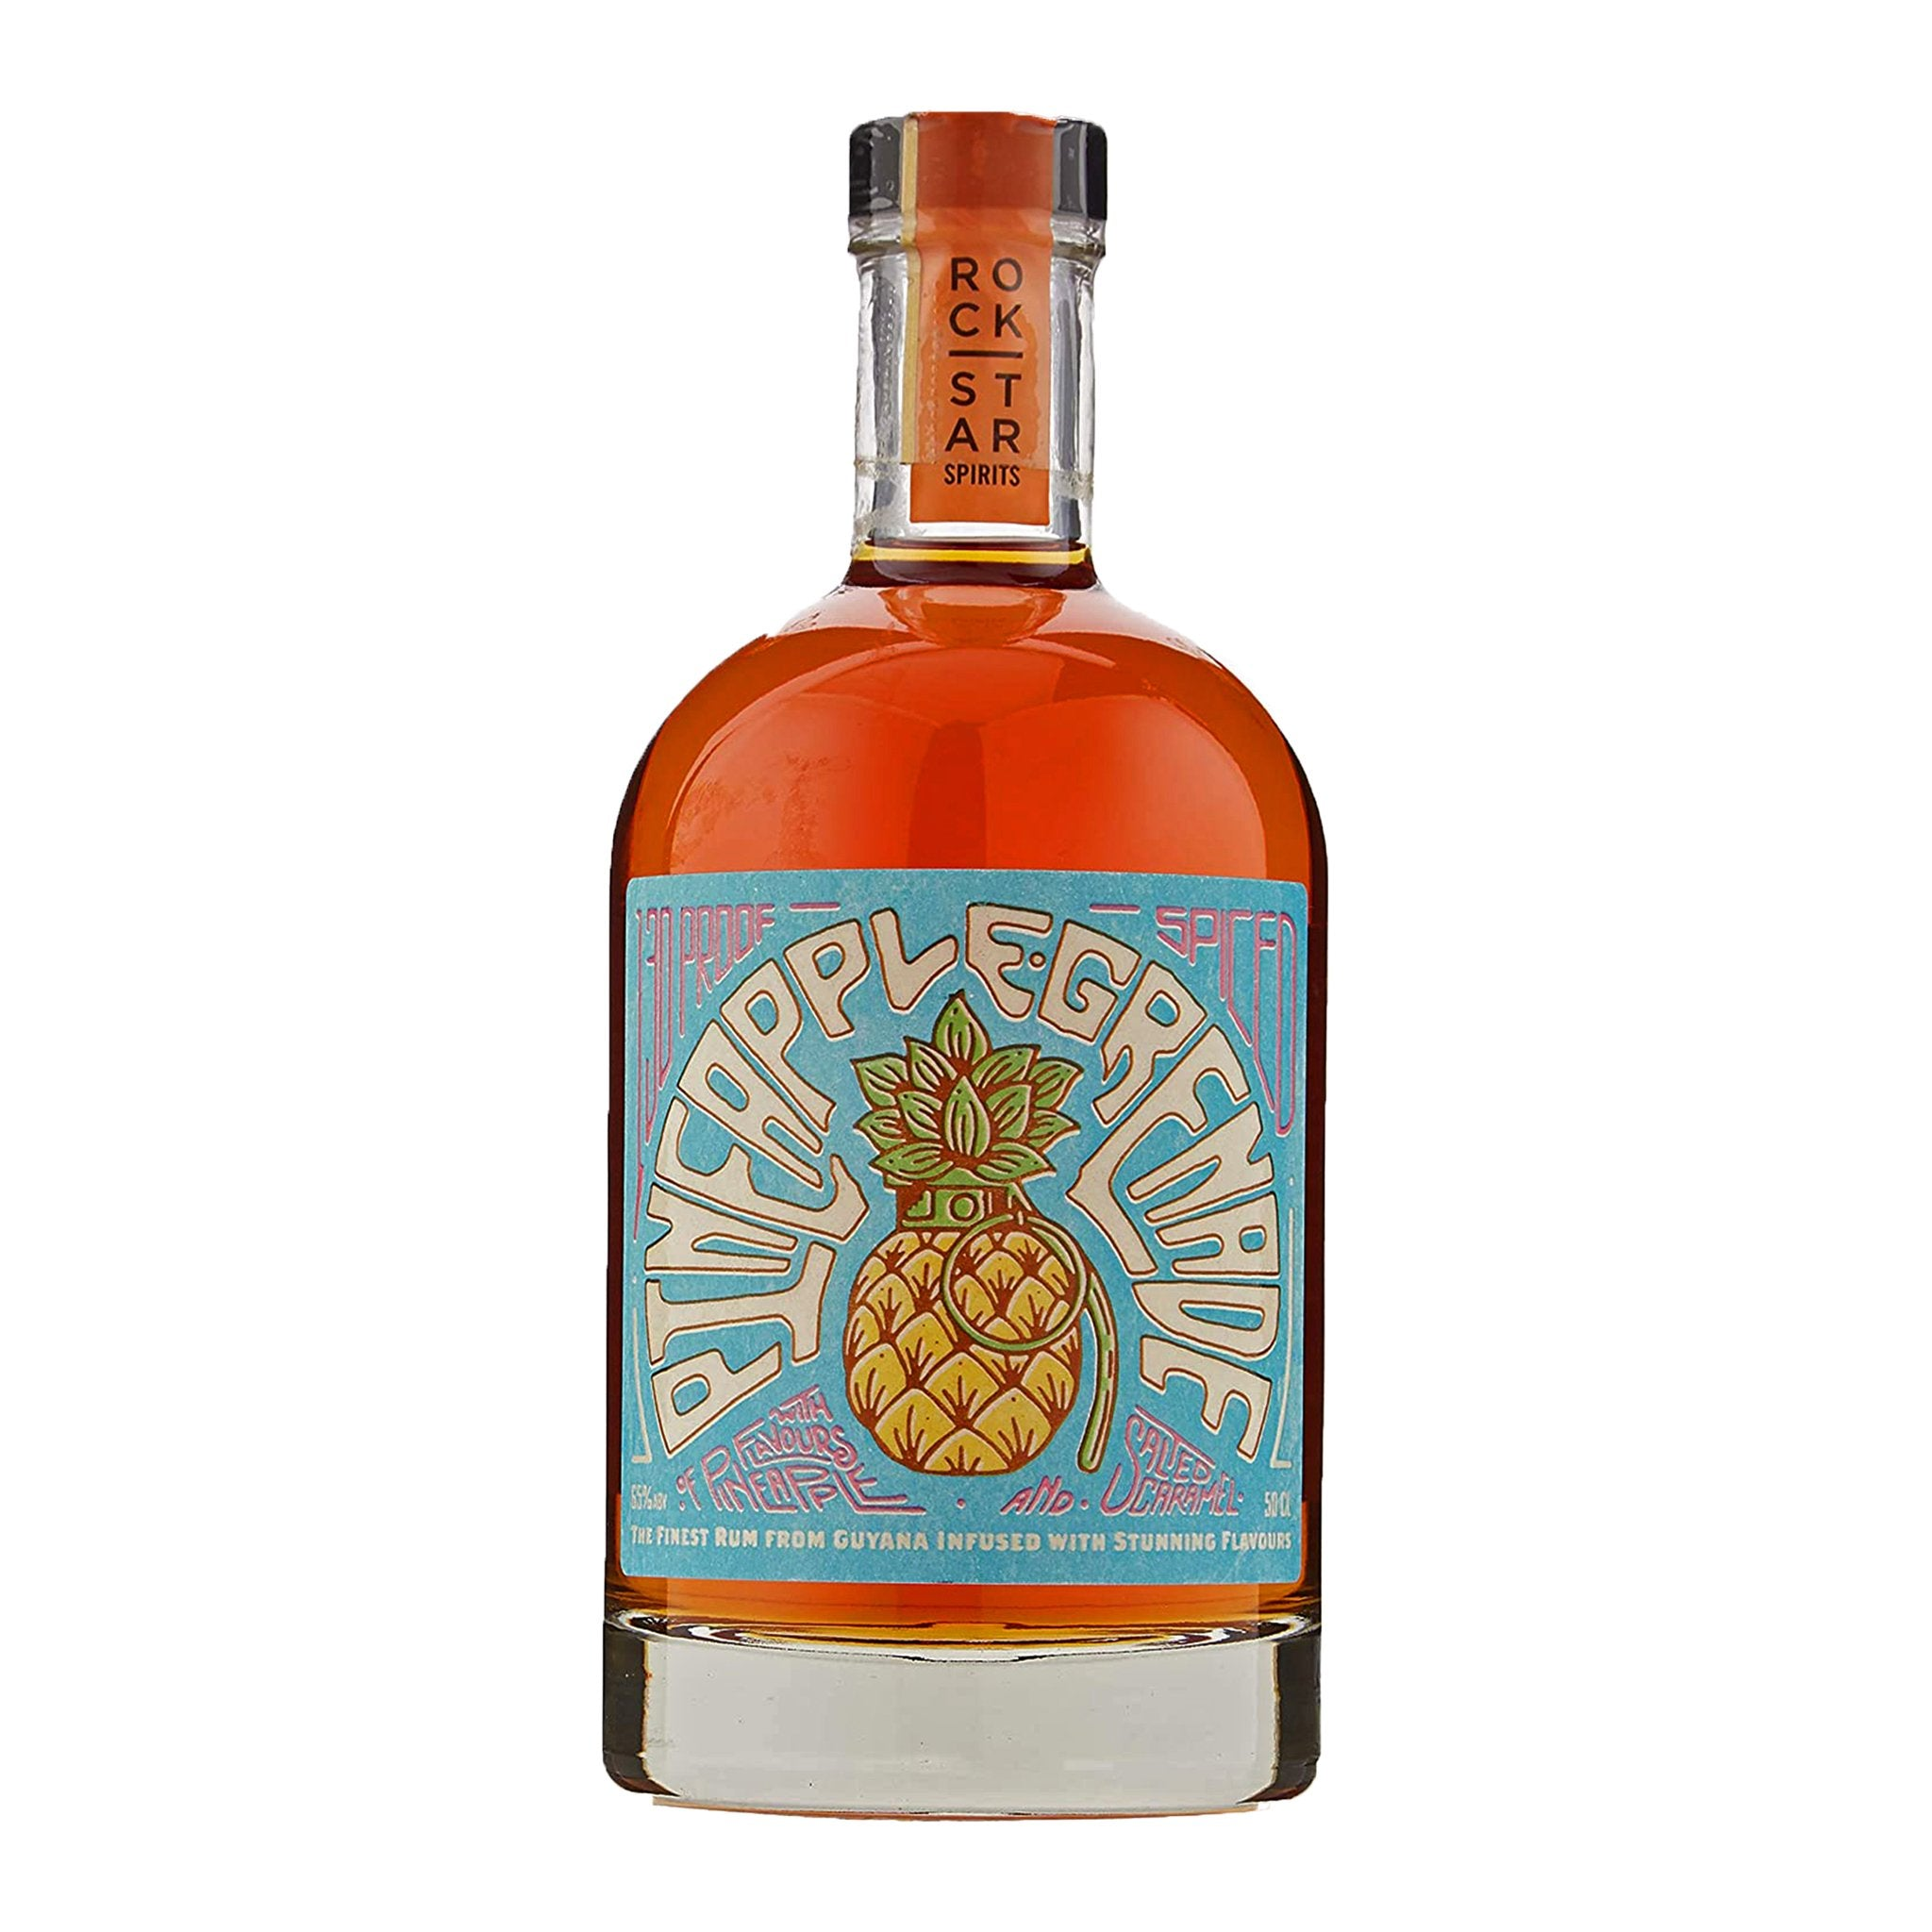 Rockstar Spirits Pineapple Grenade Spiced with Flavours of Pineapple and Salted Caramel 50cl, Rum by Drinks Shop